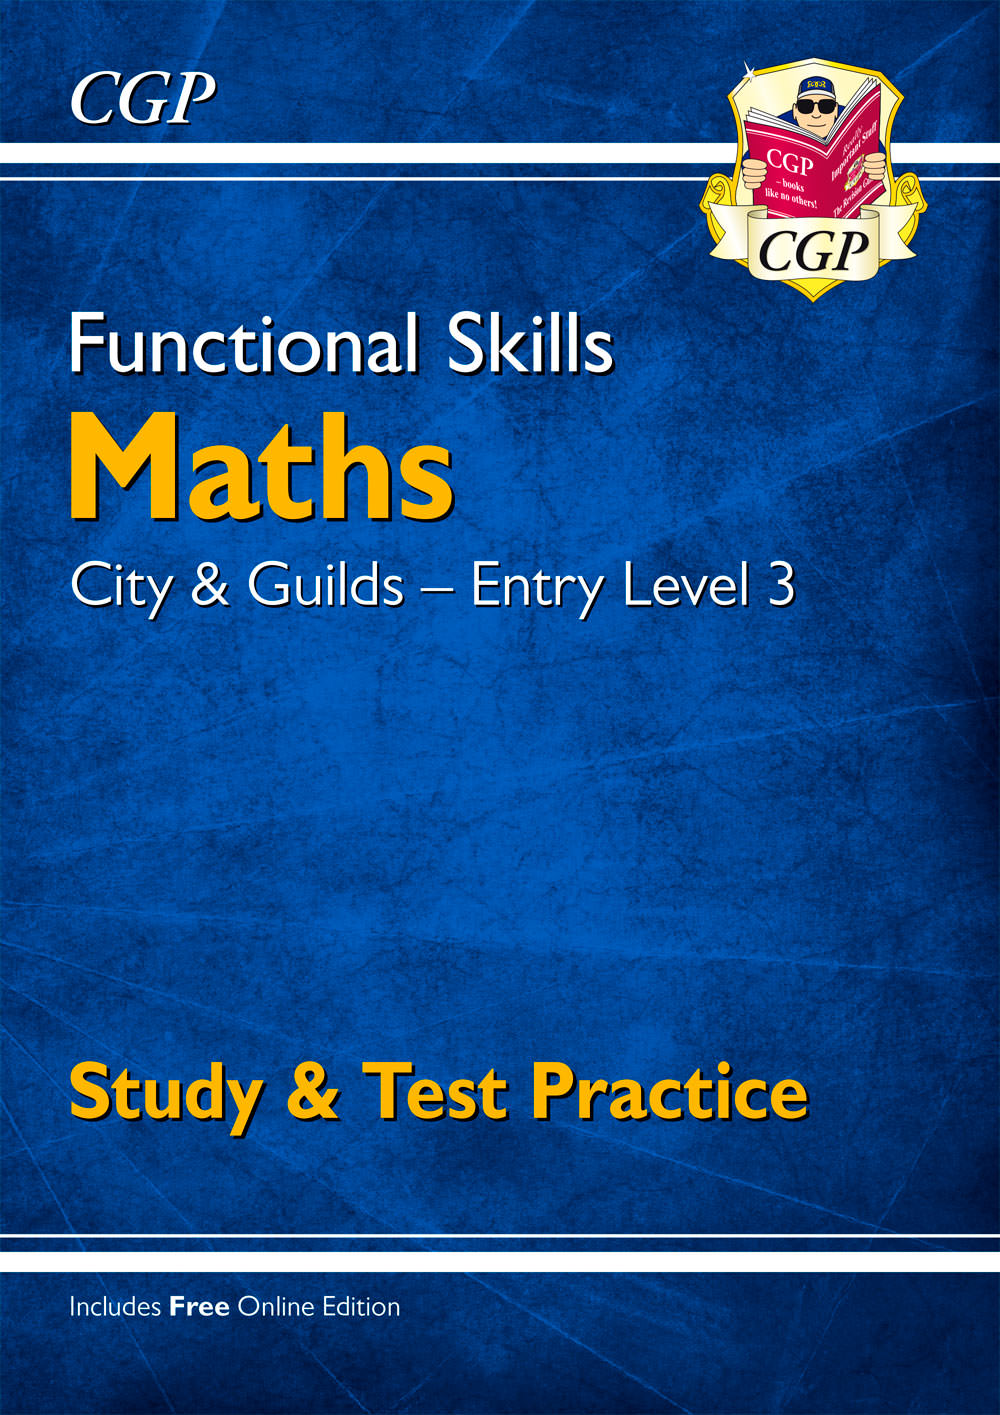 M3CGSRA1 - New Functional Skills Maths: City & Guilds Entry Level 3 - Study & Test Practice (for 201